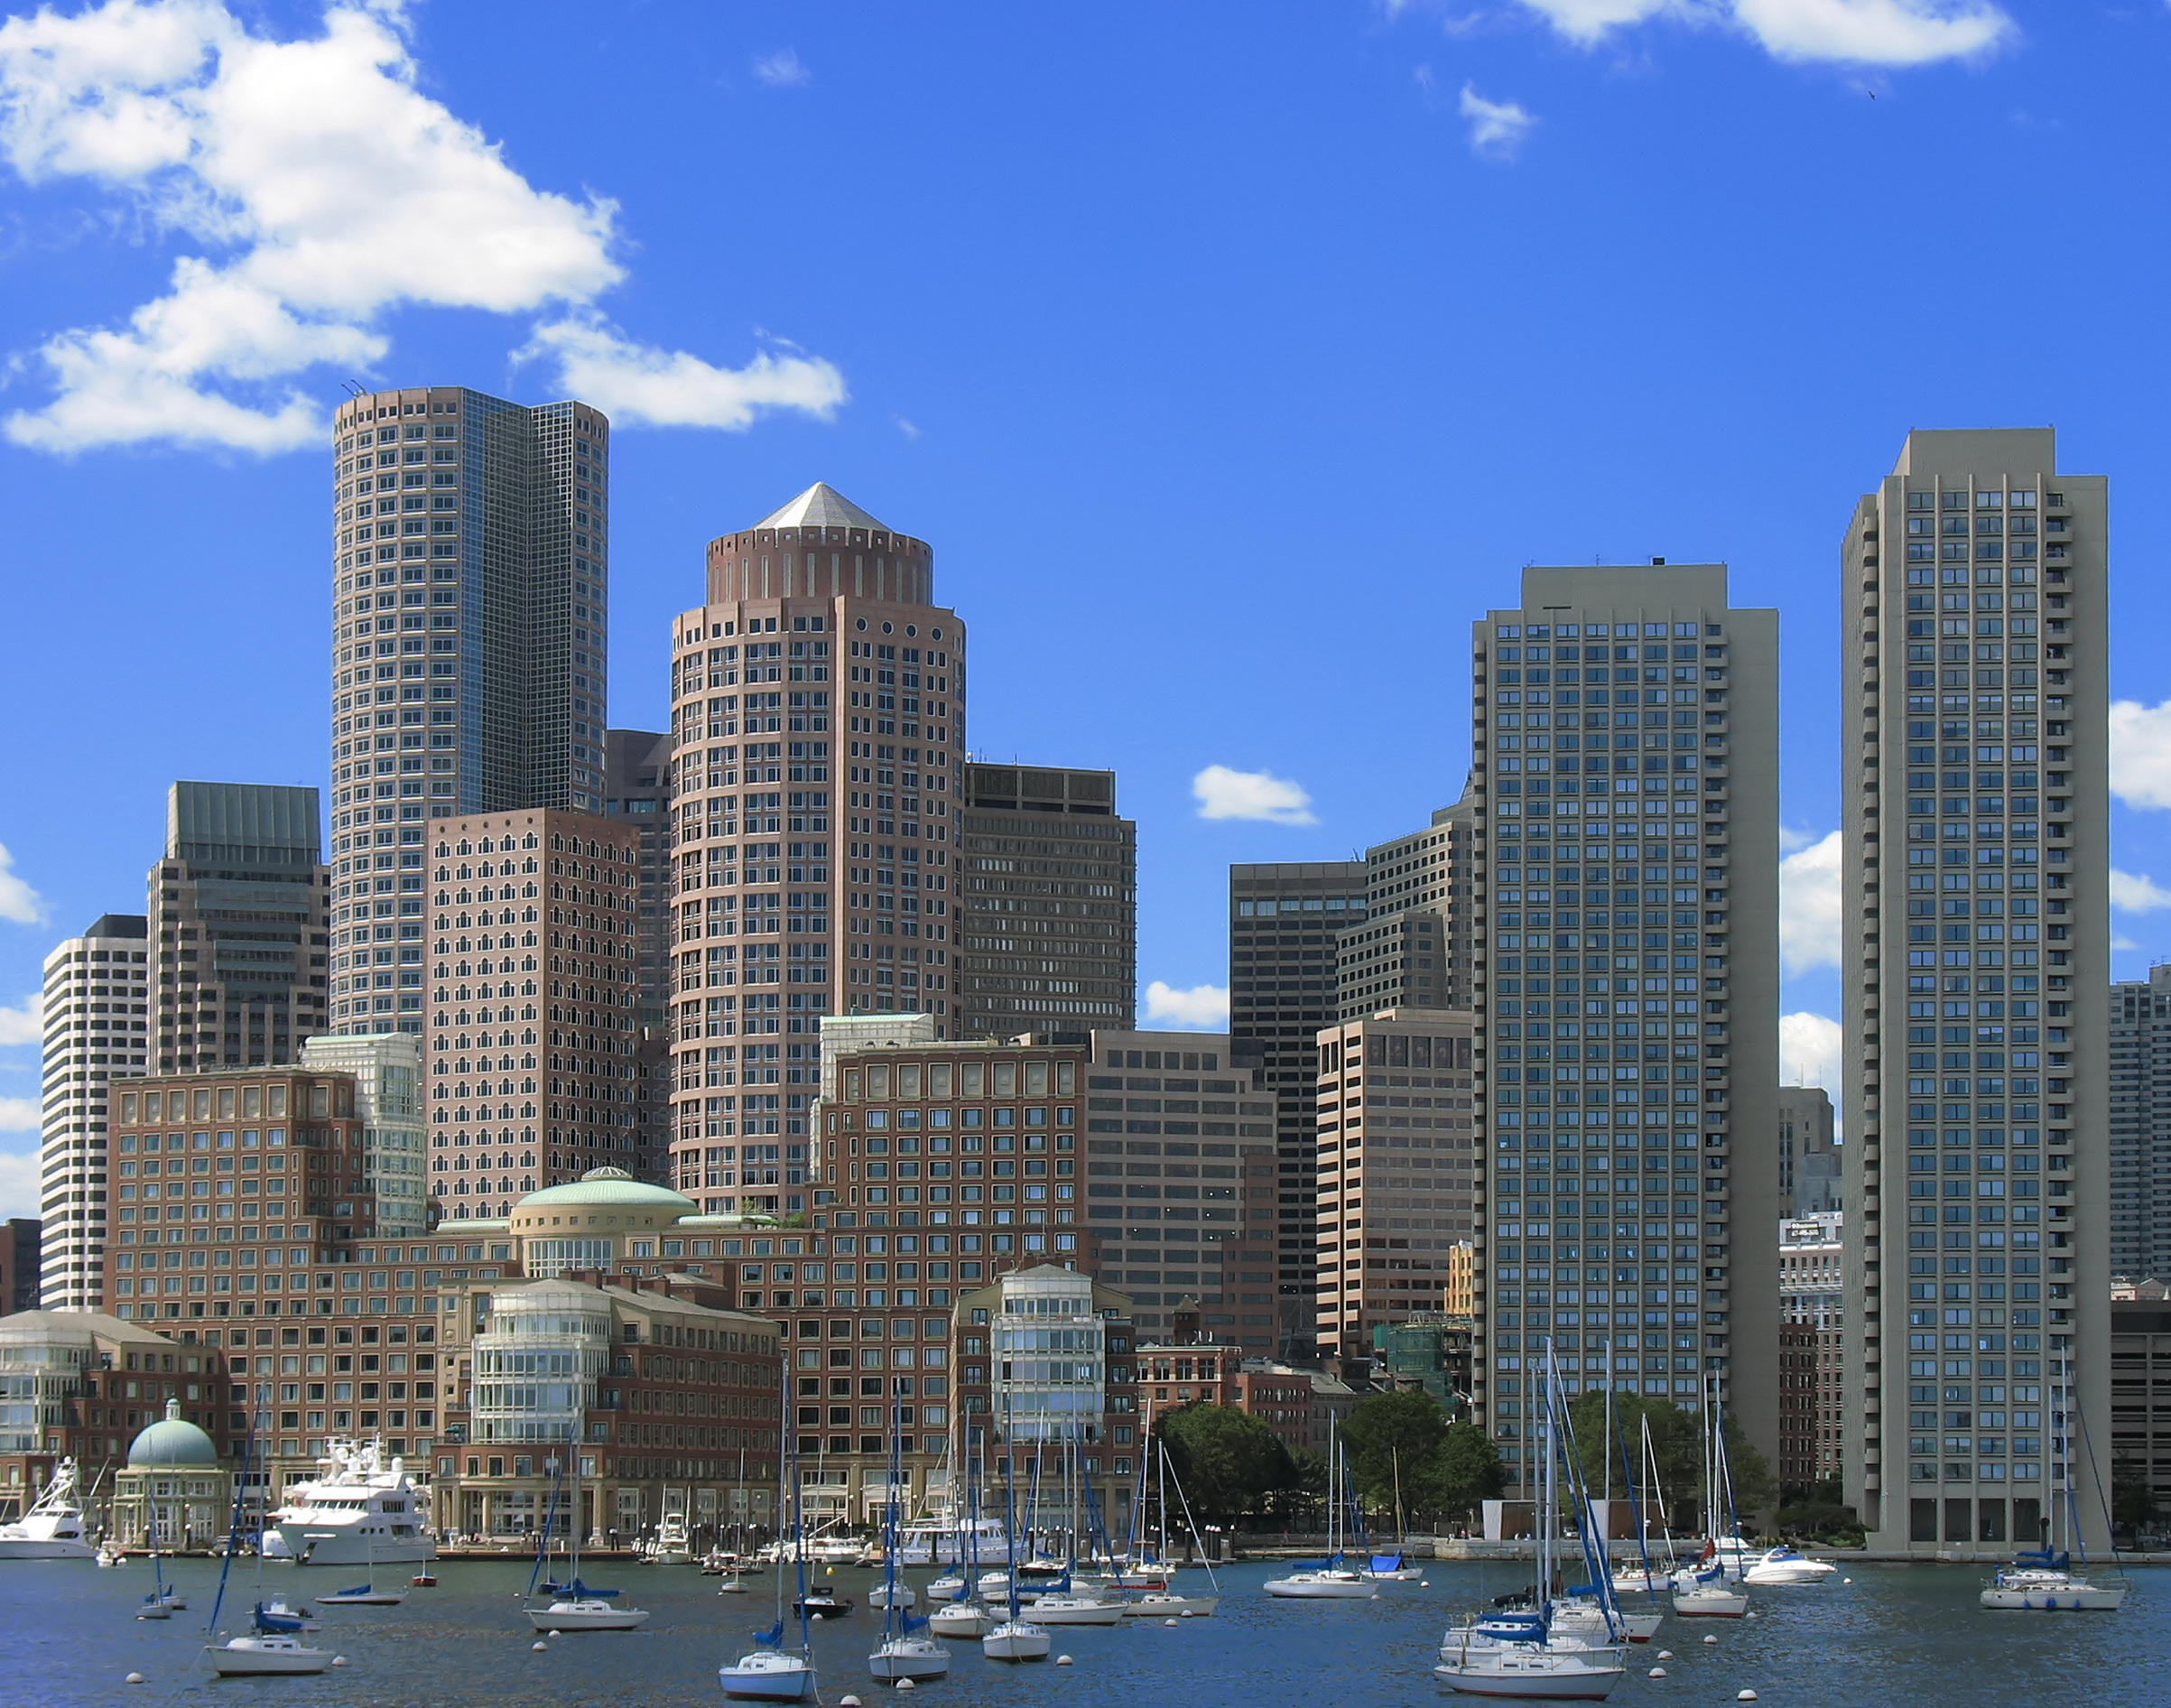 Located in the heart of Boston, Downtown has served as Boston's hub since the s. Home to City Hall, numerous corporate headquarters, condos and apartments, and some of Boston's most beloved tourist attractions — including the historic Freedom Trail .